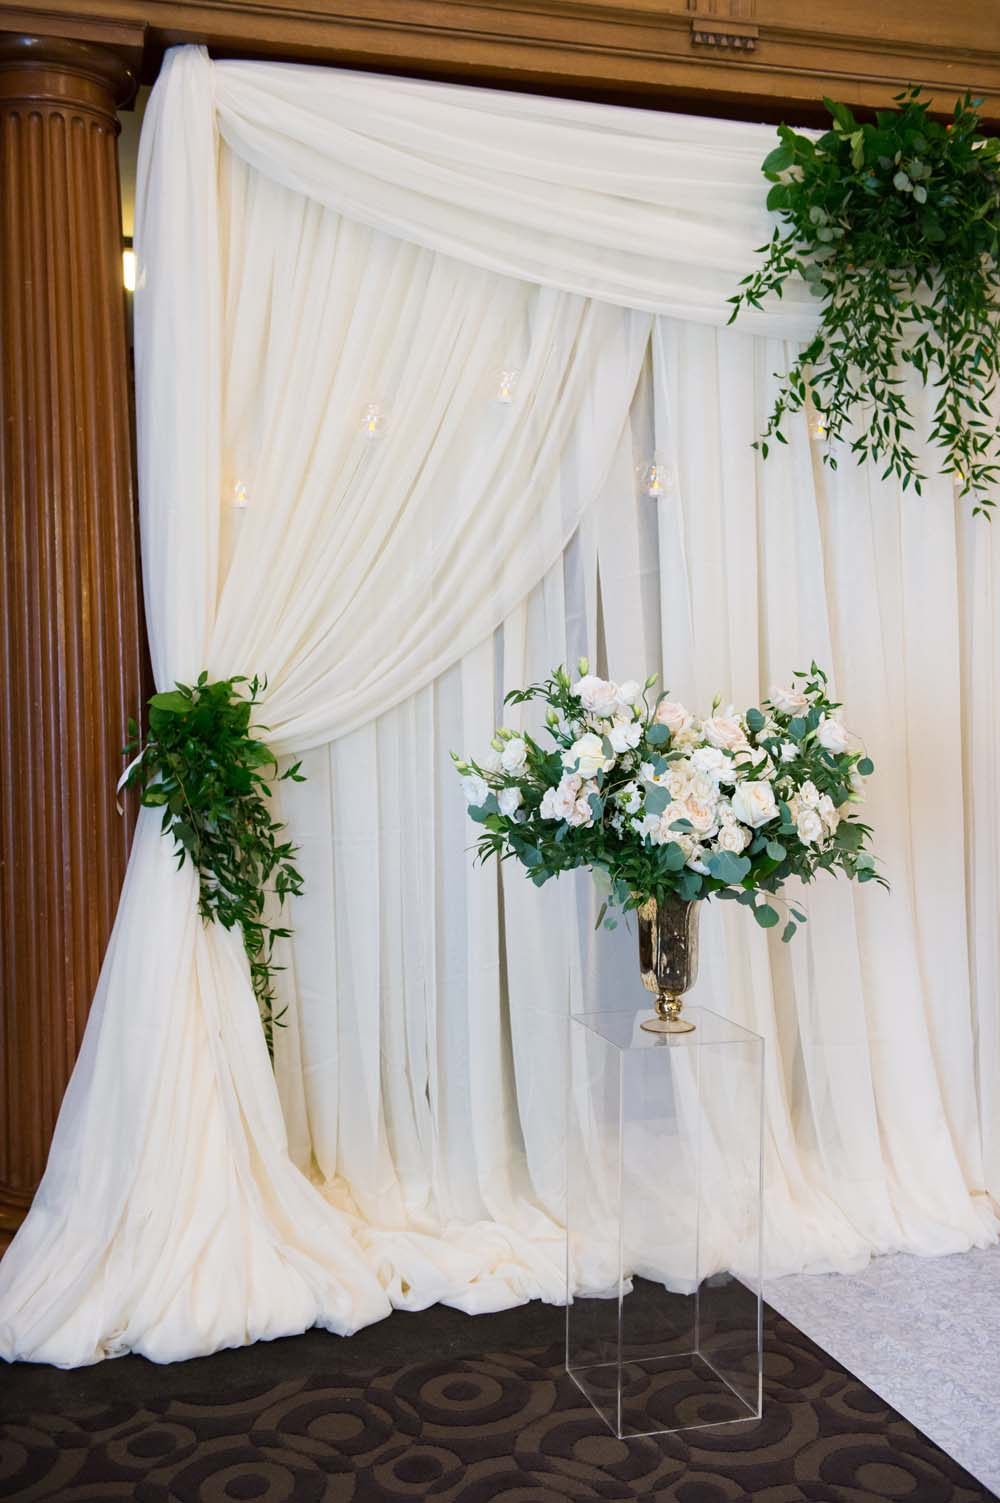 A Classic Vintage inspired Wedding at the One King West in Toronto - Wall Decor